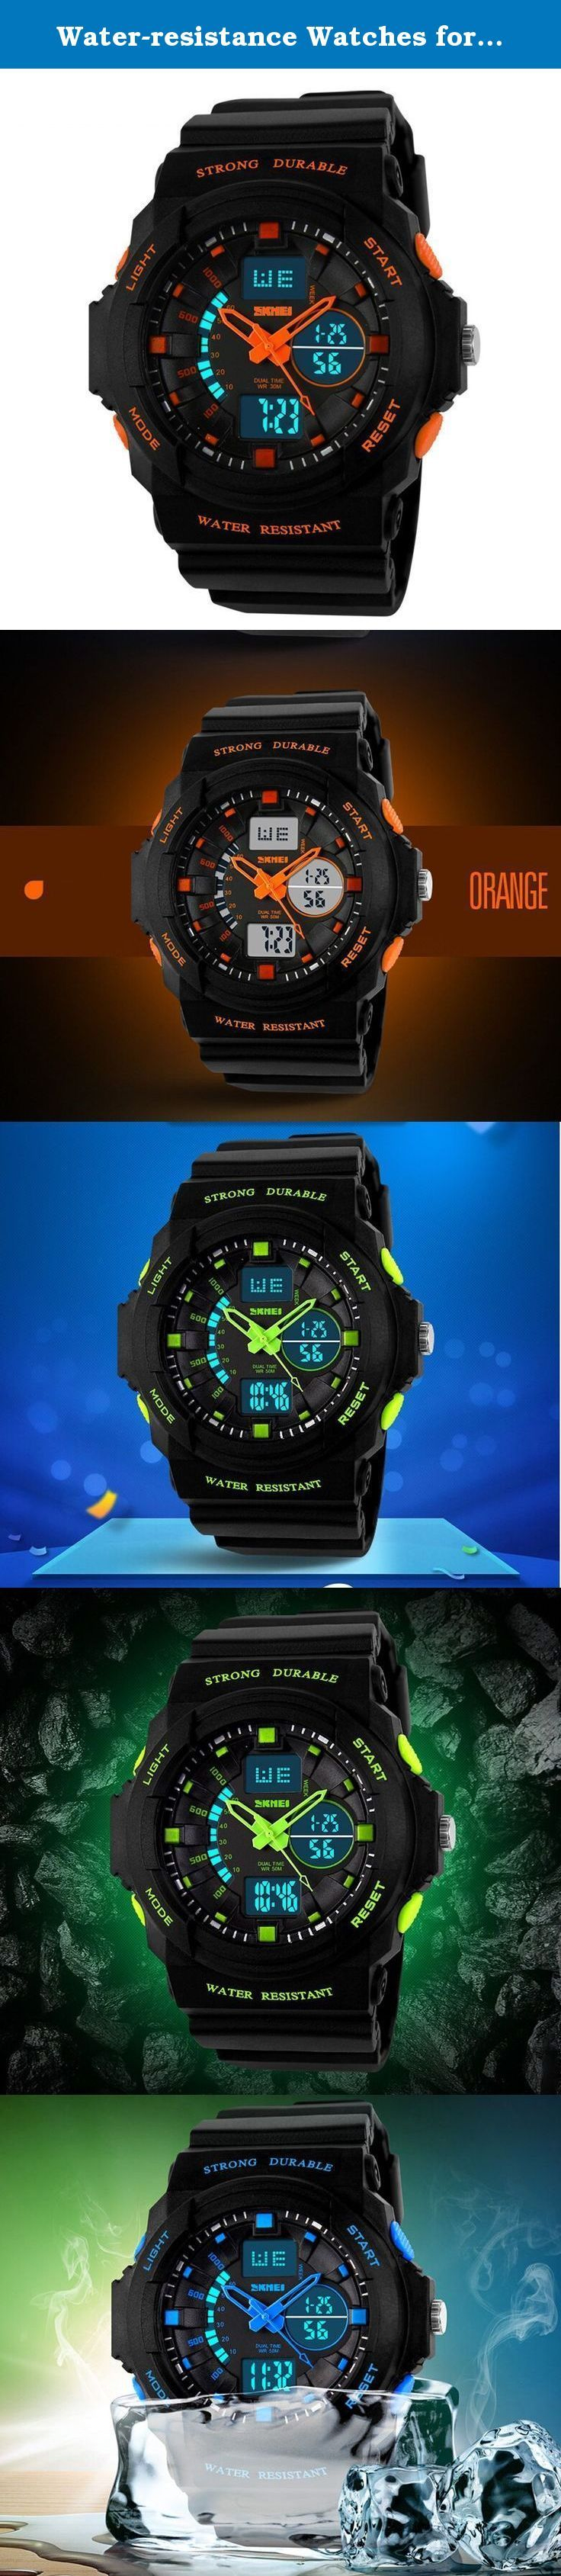 Water-resistance Watches for Children Casual Kids Students Boys Girls Outdoor Sports Watch -. A variety of styles you can choose in our store ! Package Included: 1 x Watch Please Note: 1. Actual color may vary from picture due to computer settings. 2. Find store front of Sunny world, more surprises are waiting for you! Dear Buyer, Thanks for your continuous support to our store, and we are always striving to improve ourselves in terms of service, quality, sourcing, etc. It would be highly...